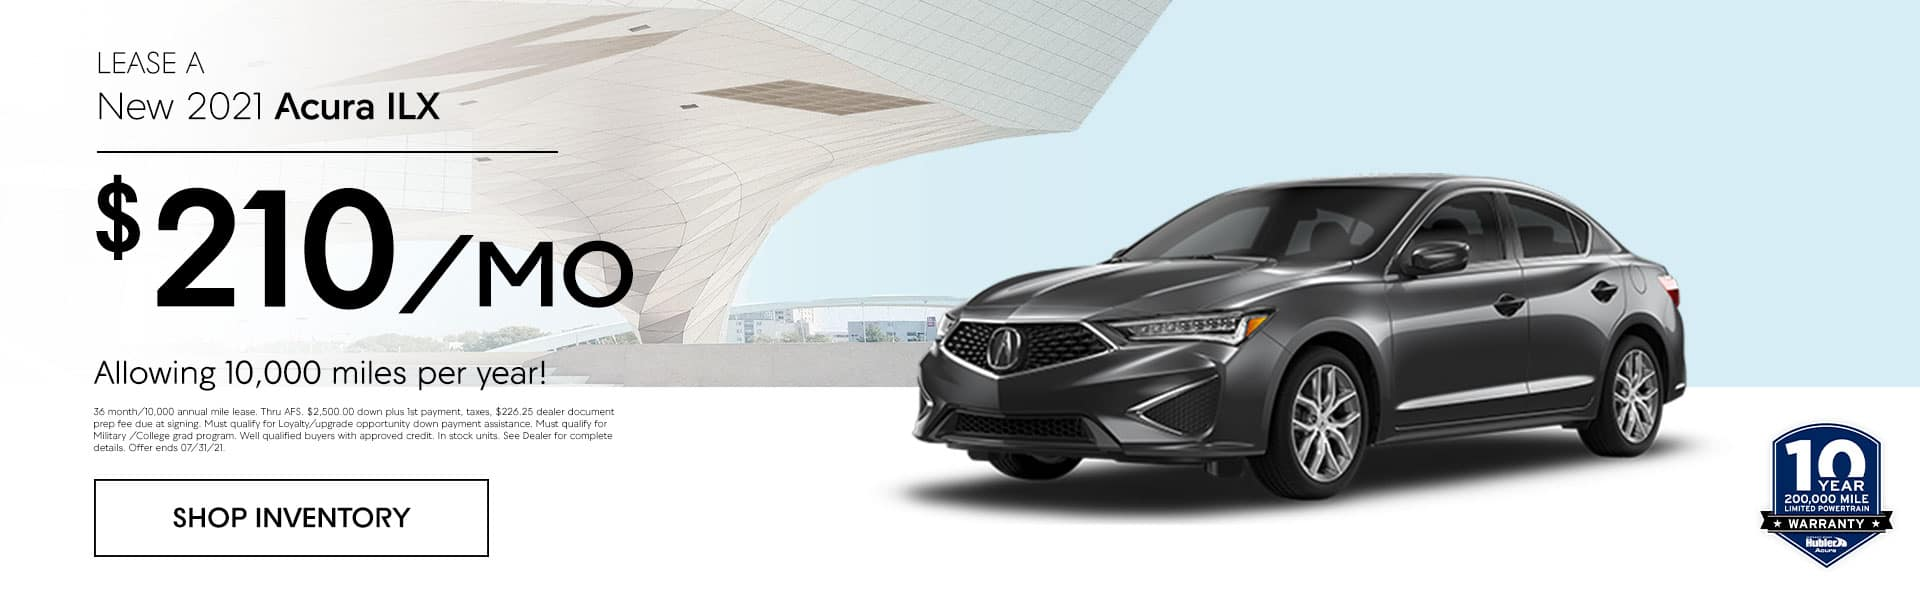 2020 Acura MDX AWD Lease for just $338.00 per month for 36 months allowing 10,000 miles per year!